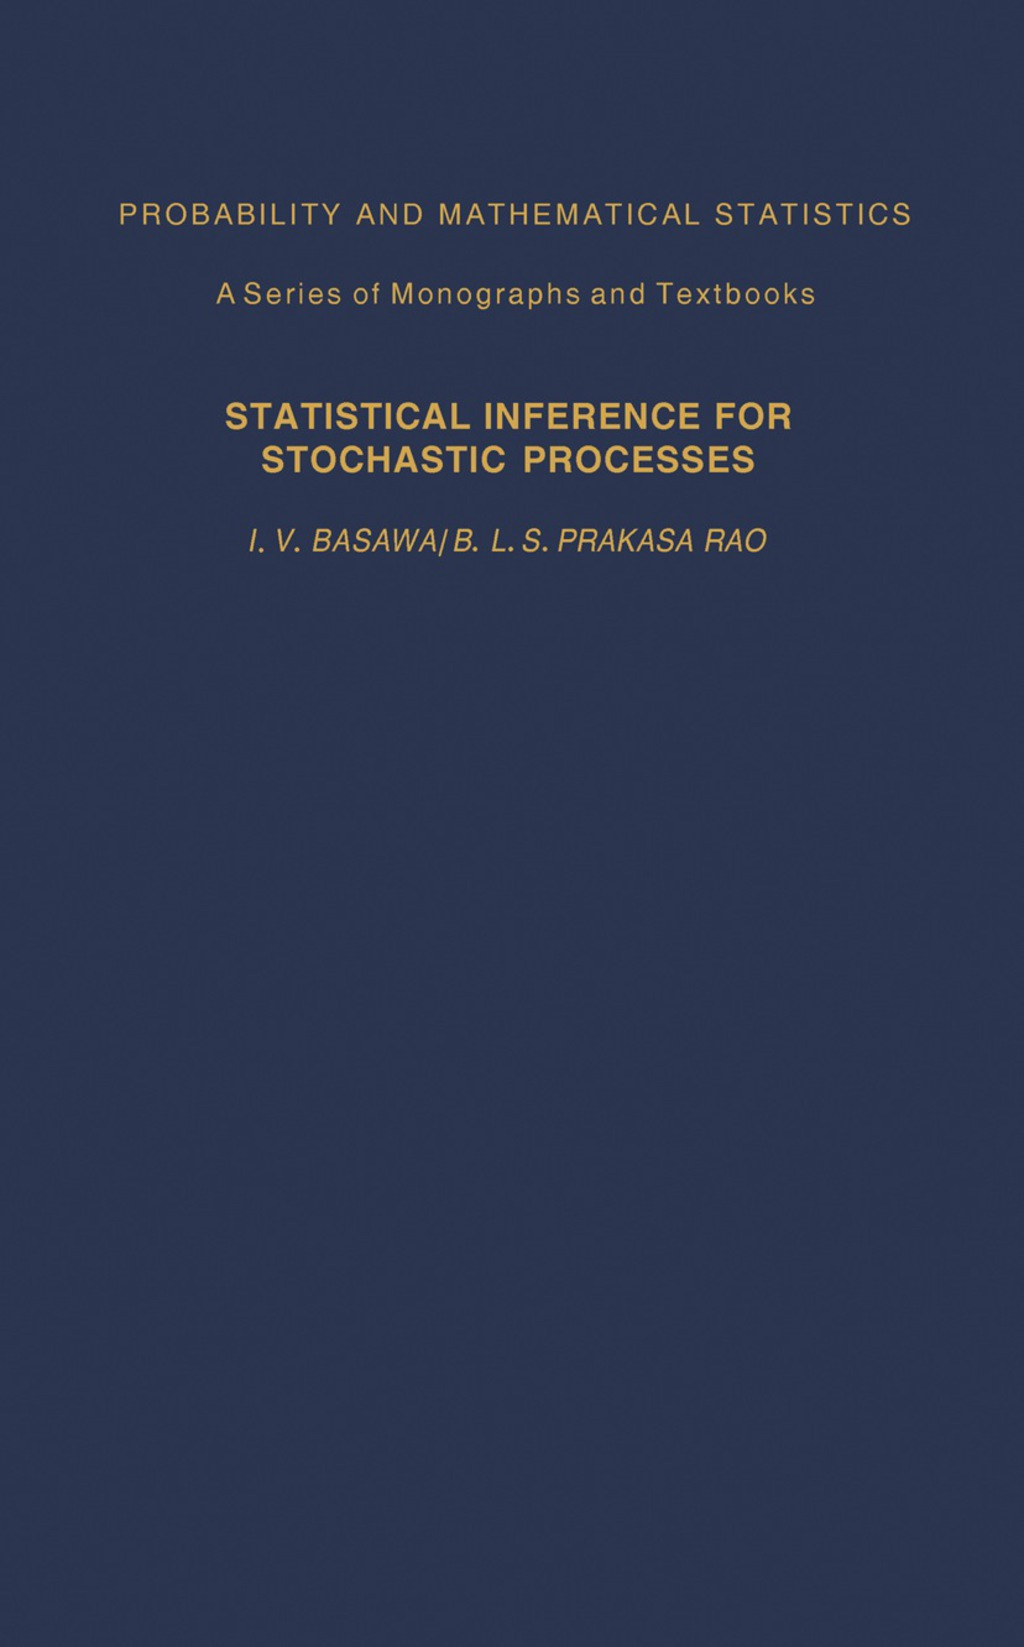 Statistical Inferences for Stochasic Processes (eBook)